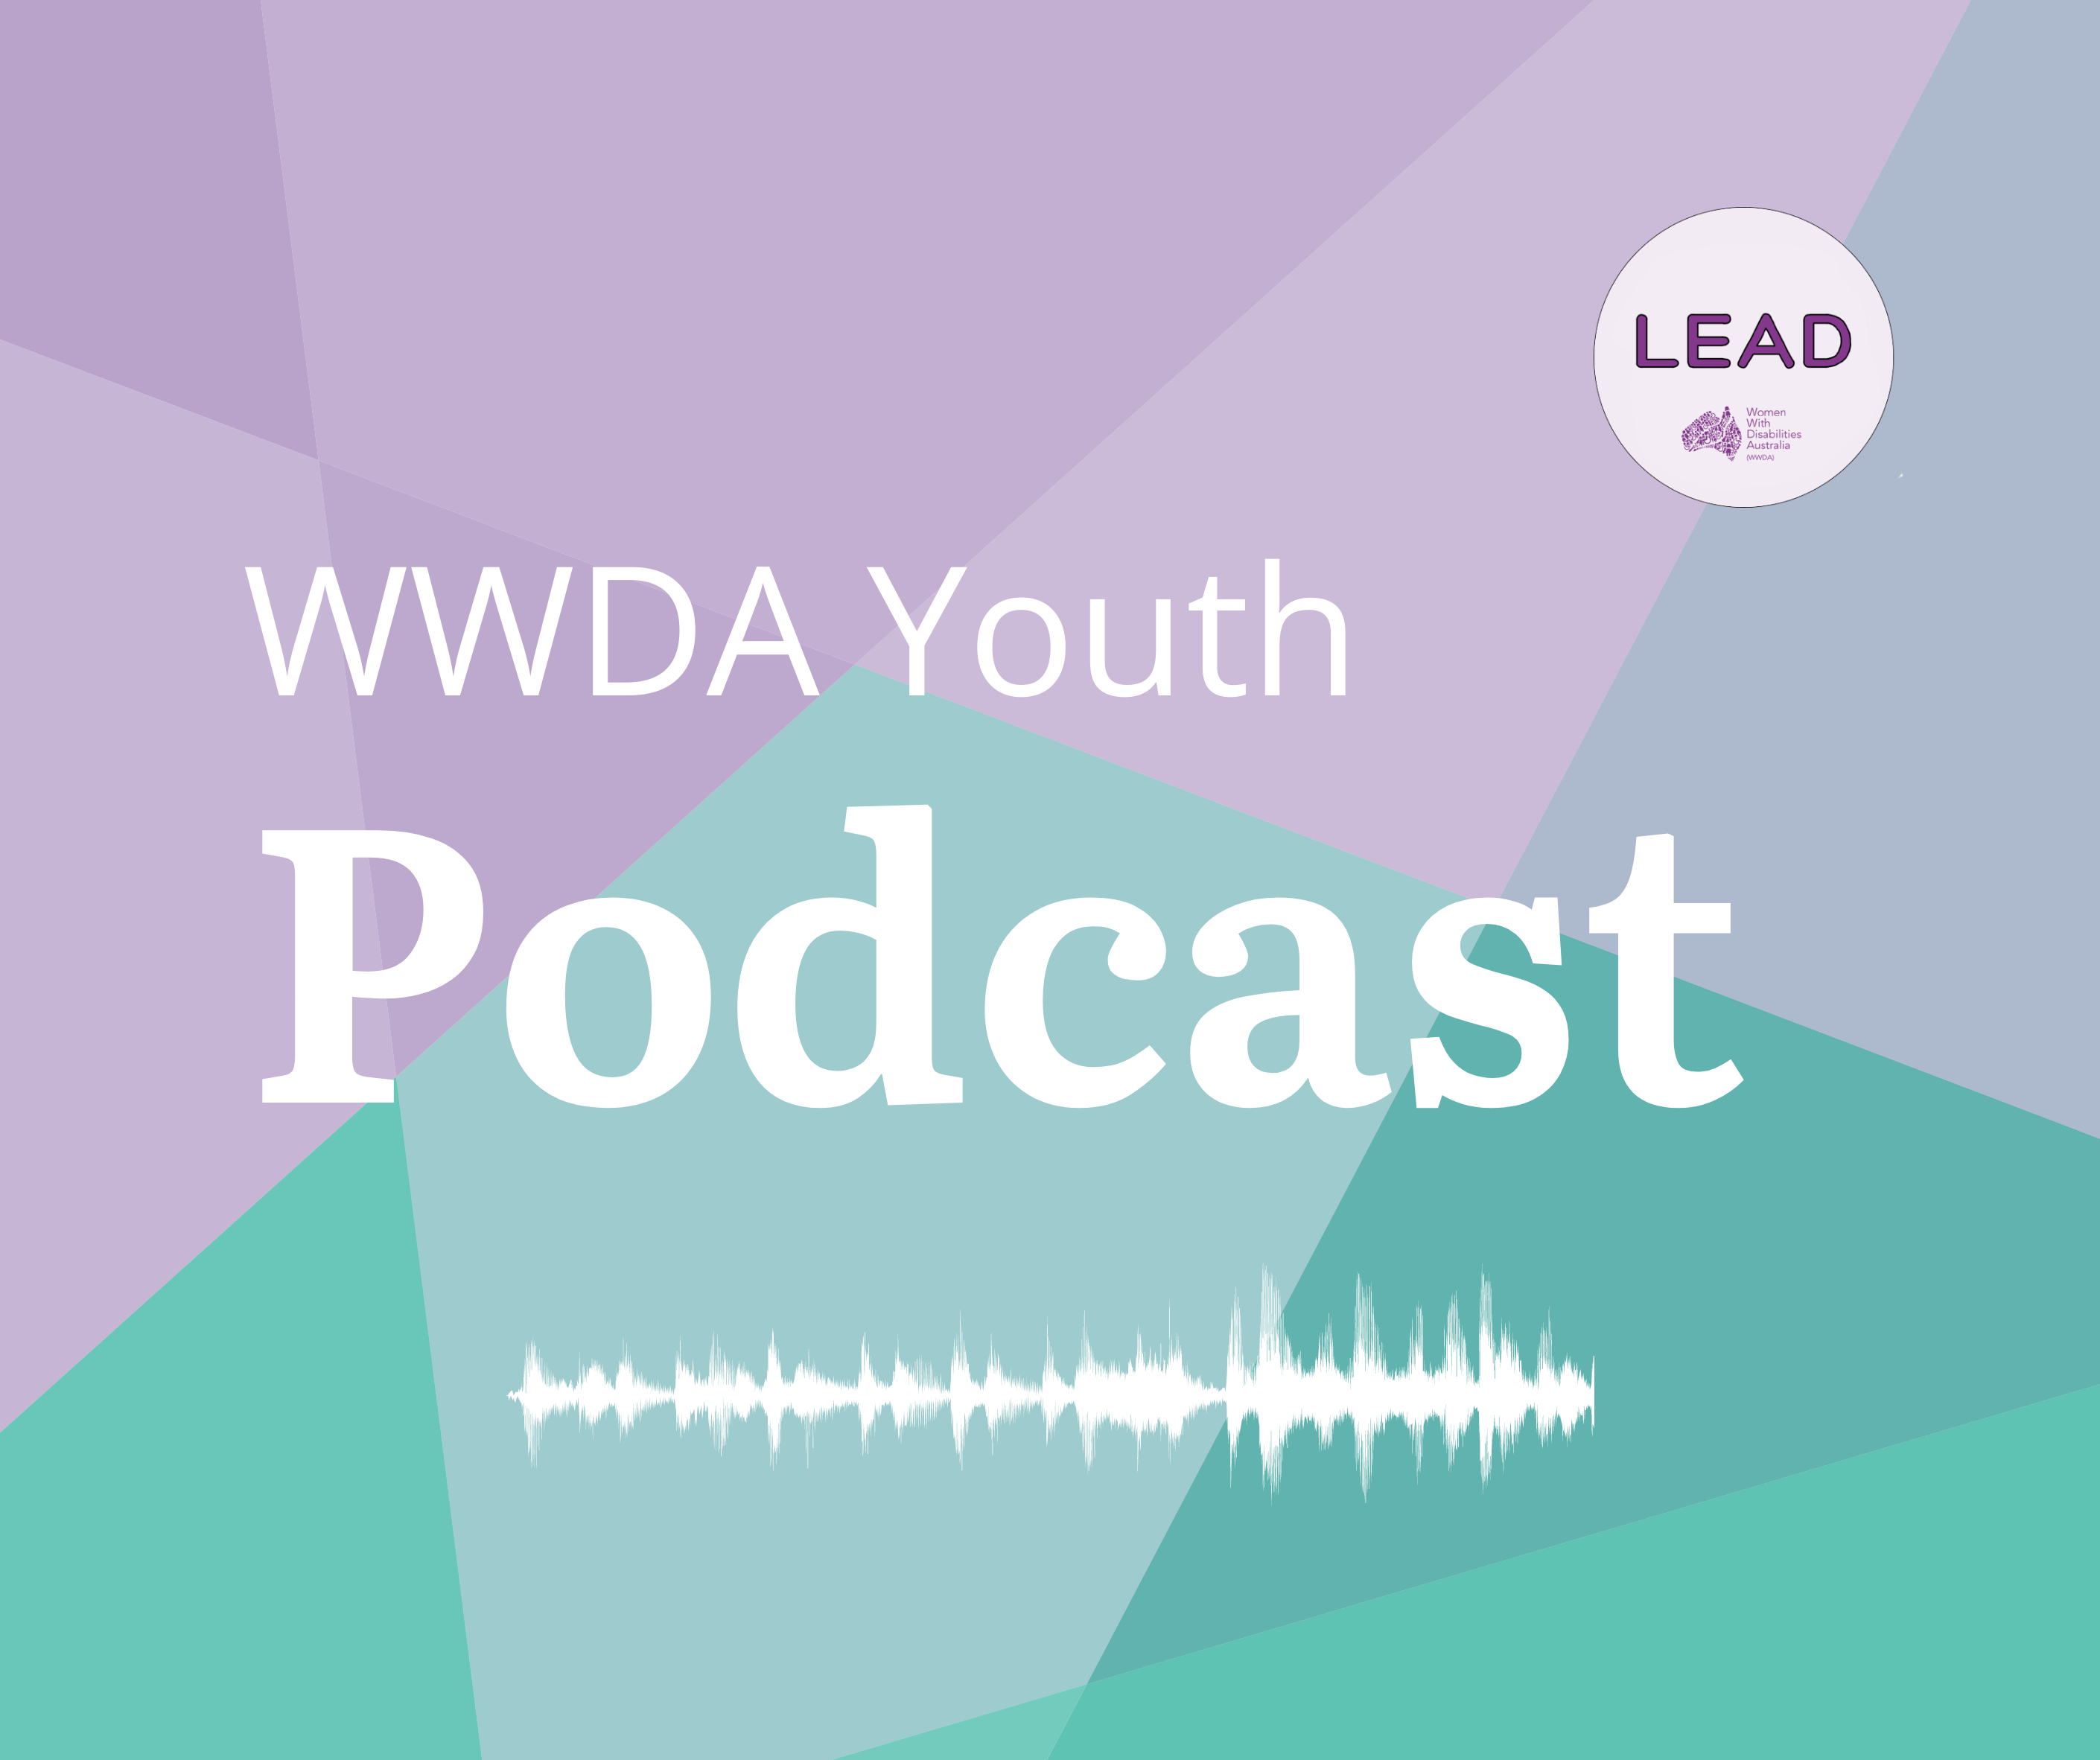 A geometric purple and green background with white text that reads WWDA Youth Podcast